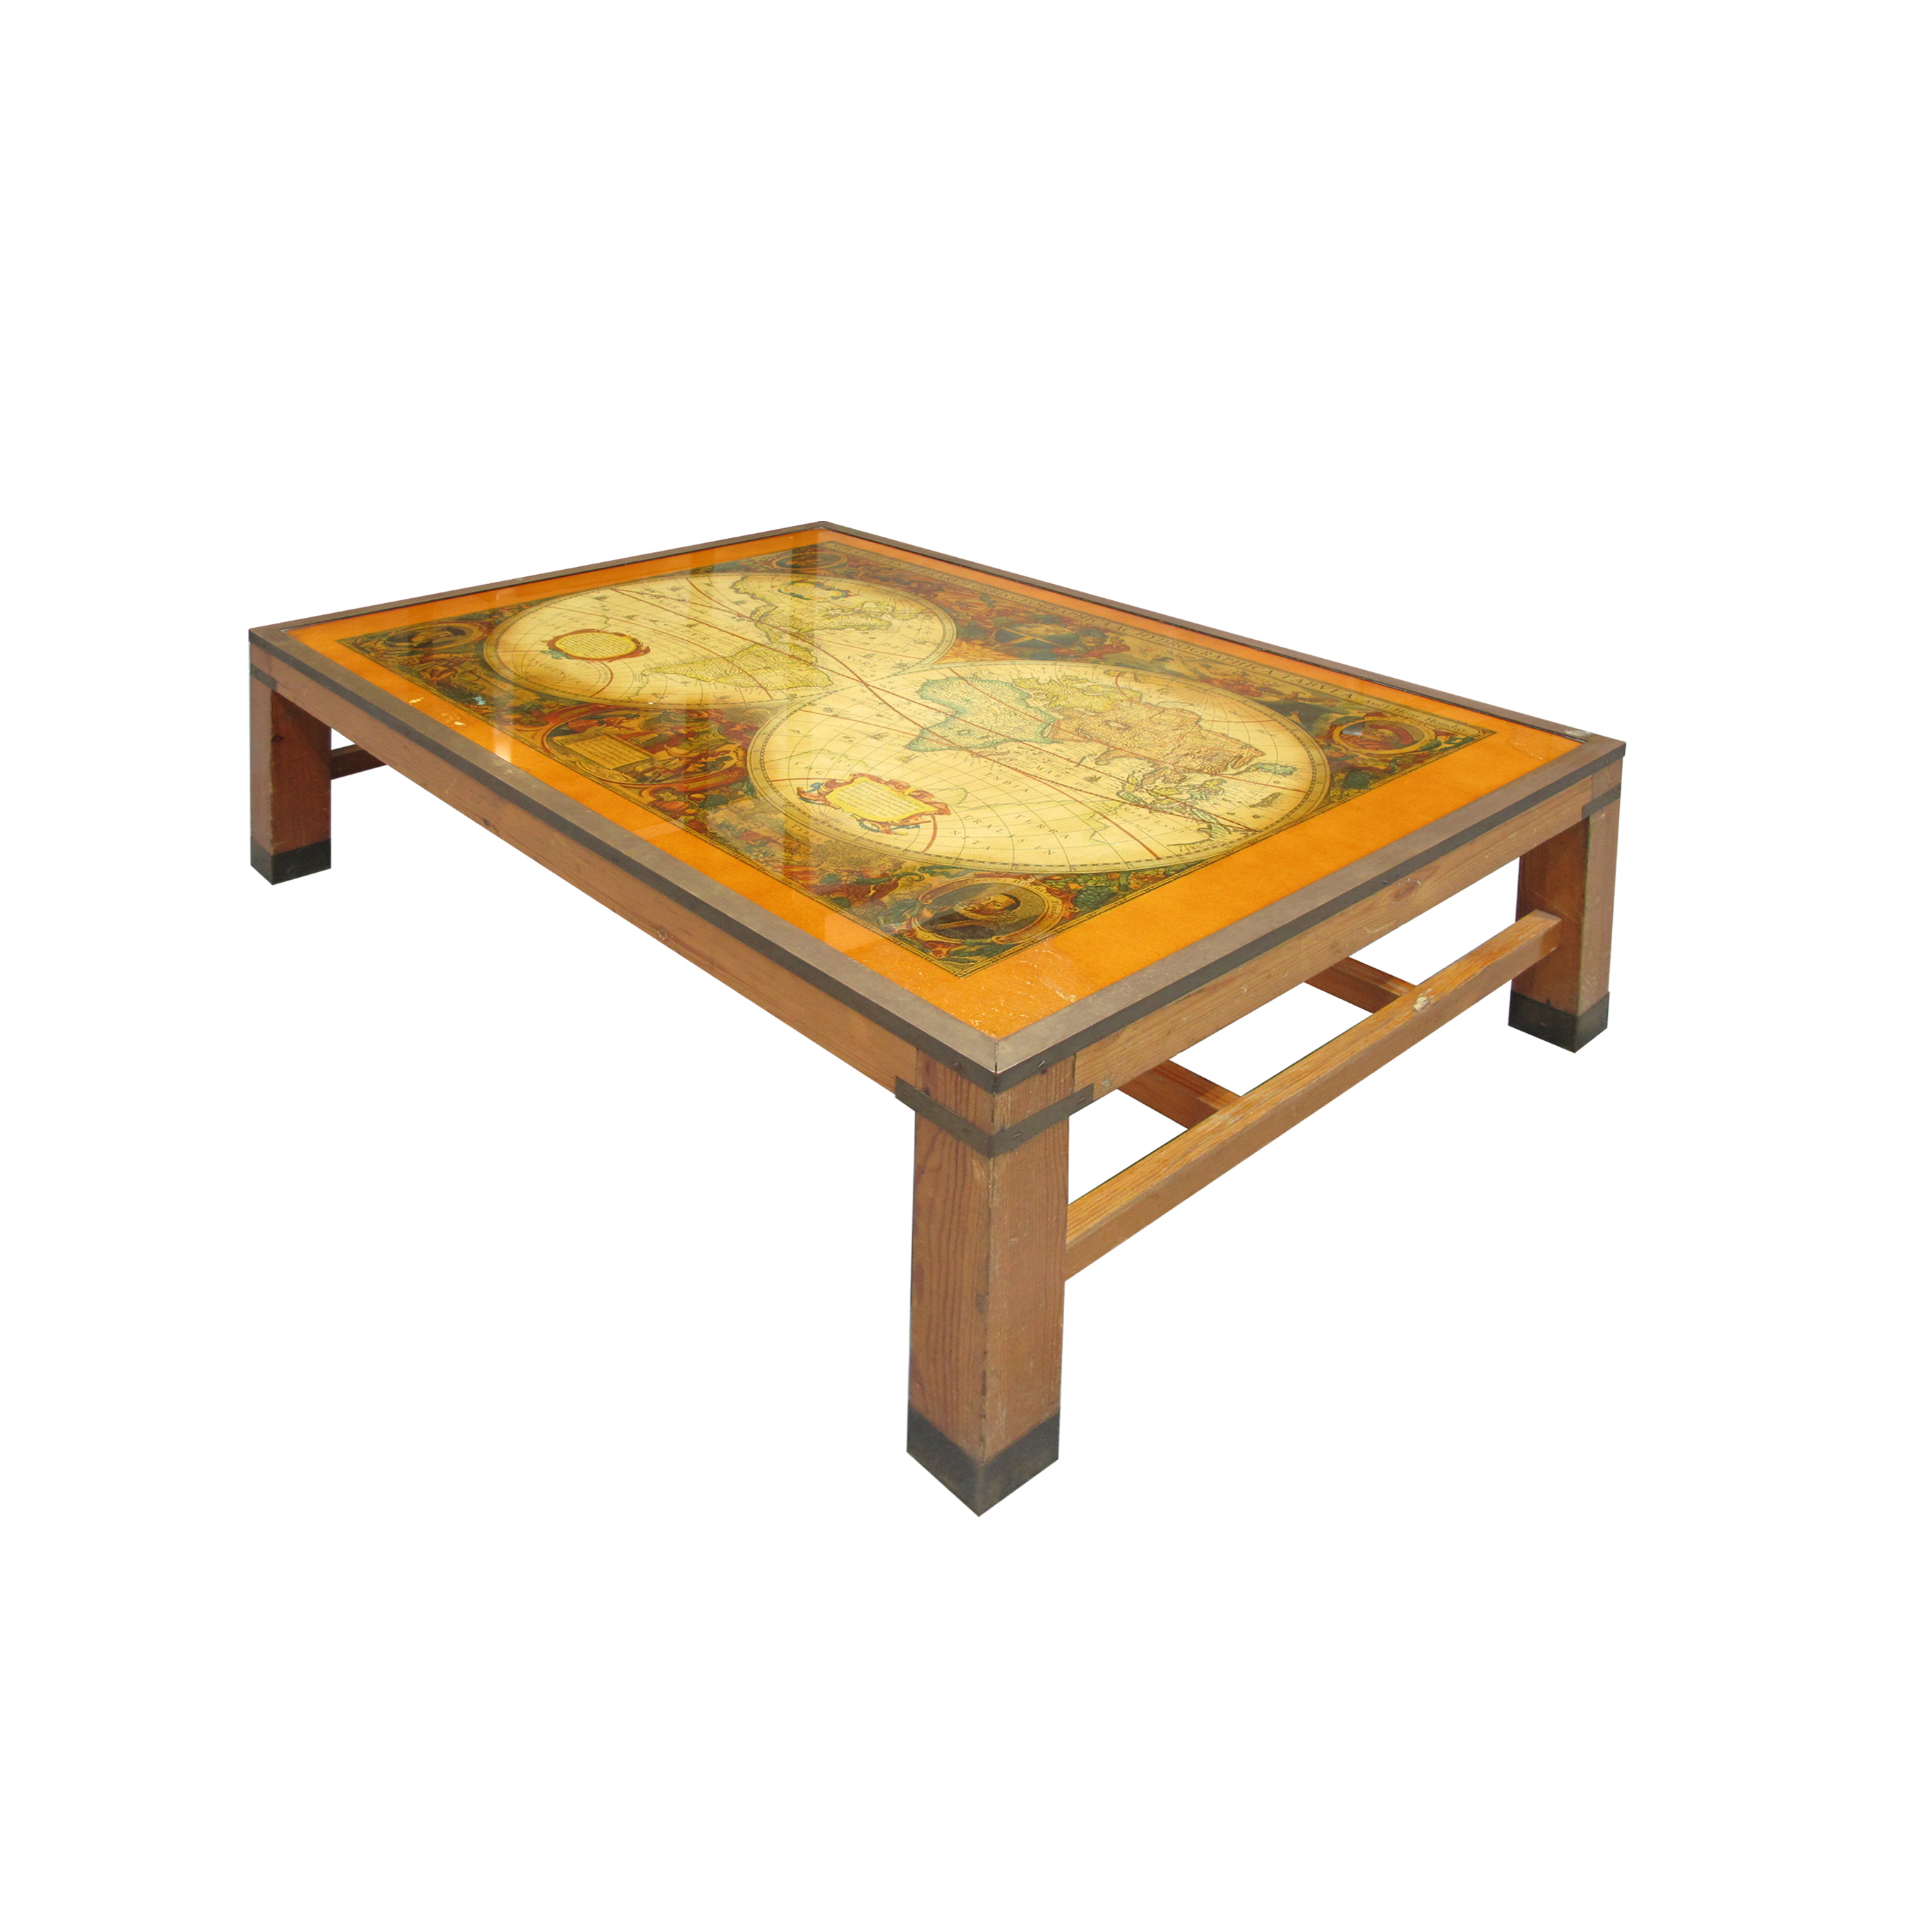 Antique World Map Coffee Table Les Trois Gar§ons